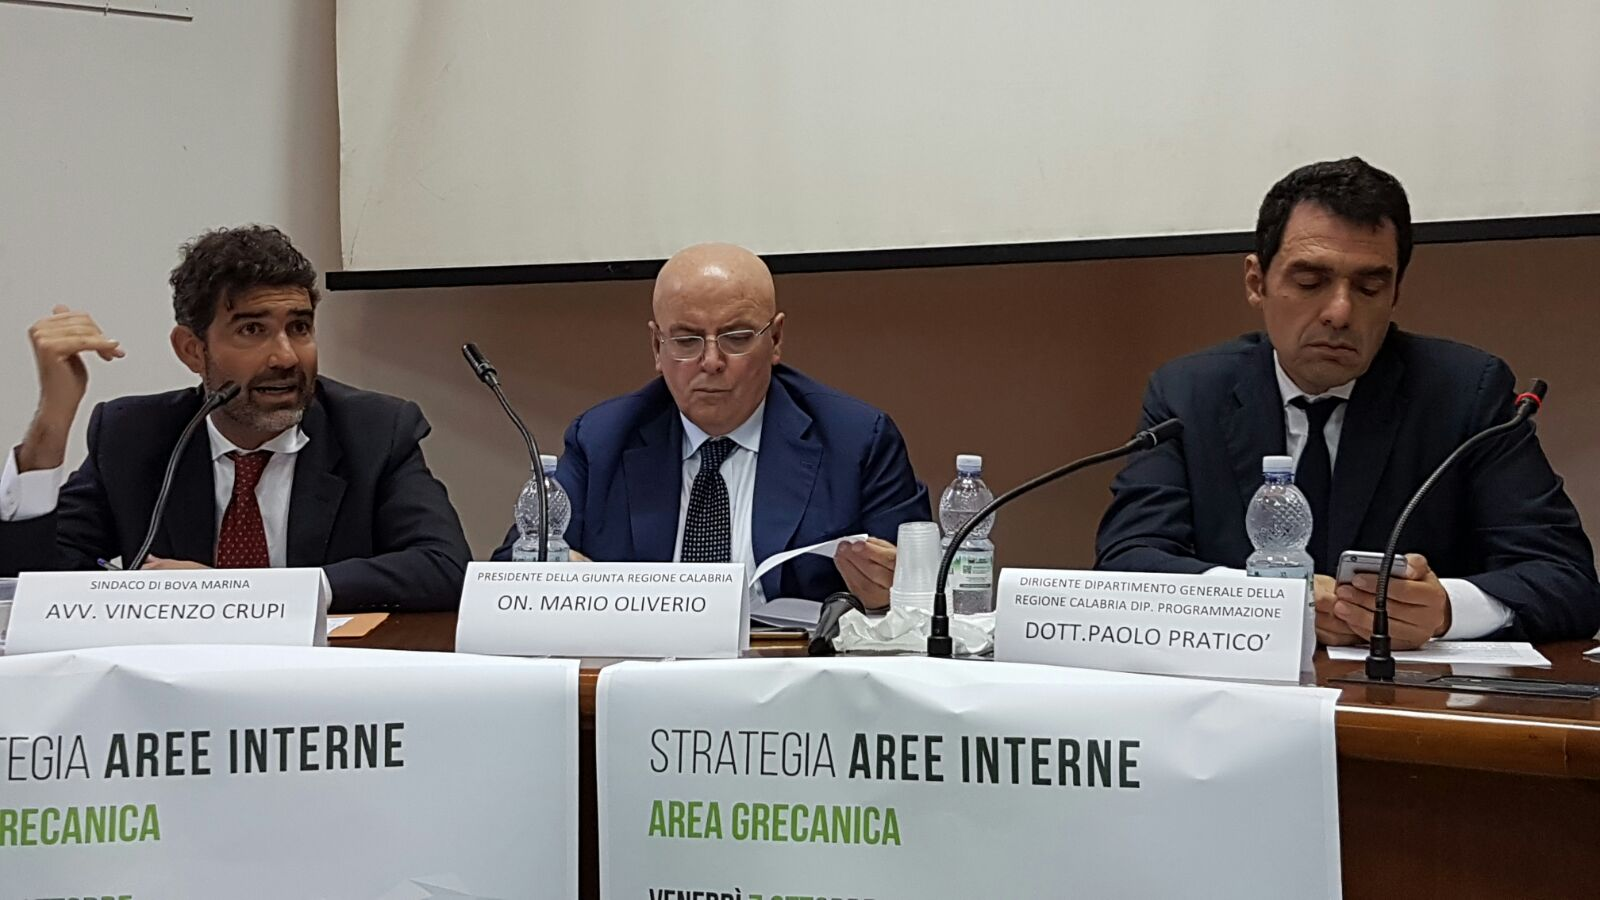 Calabria – Oliverio a Bova illustra strategie nelle aree interne e nell'area grecanicaCalabria – Oliverio a Bova illustra strategie nelle aree interne e nell'area grecanica